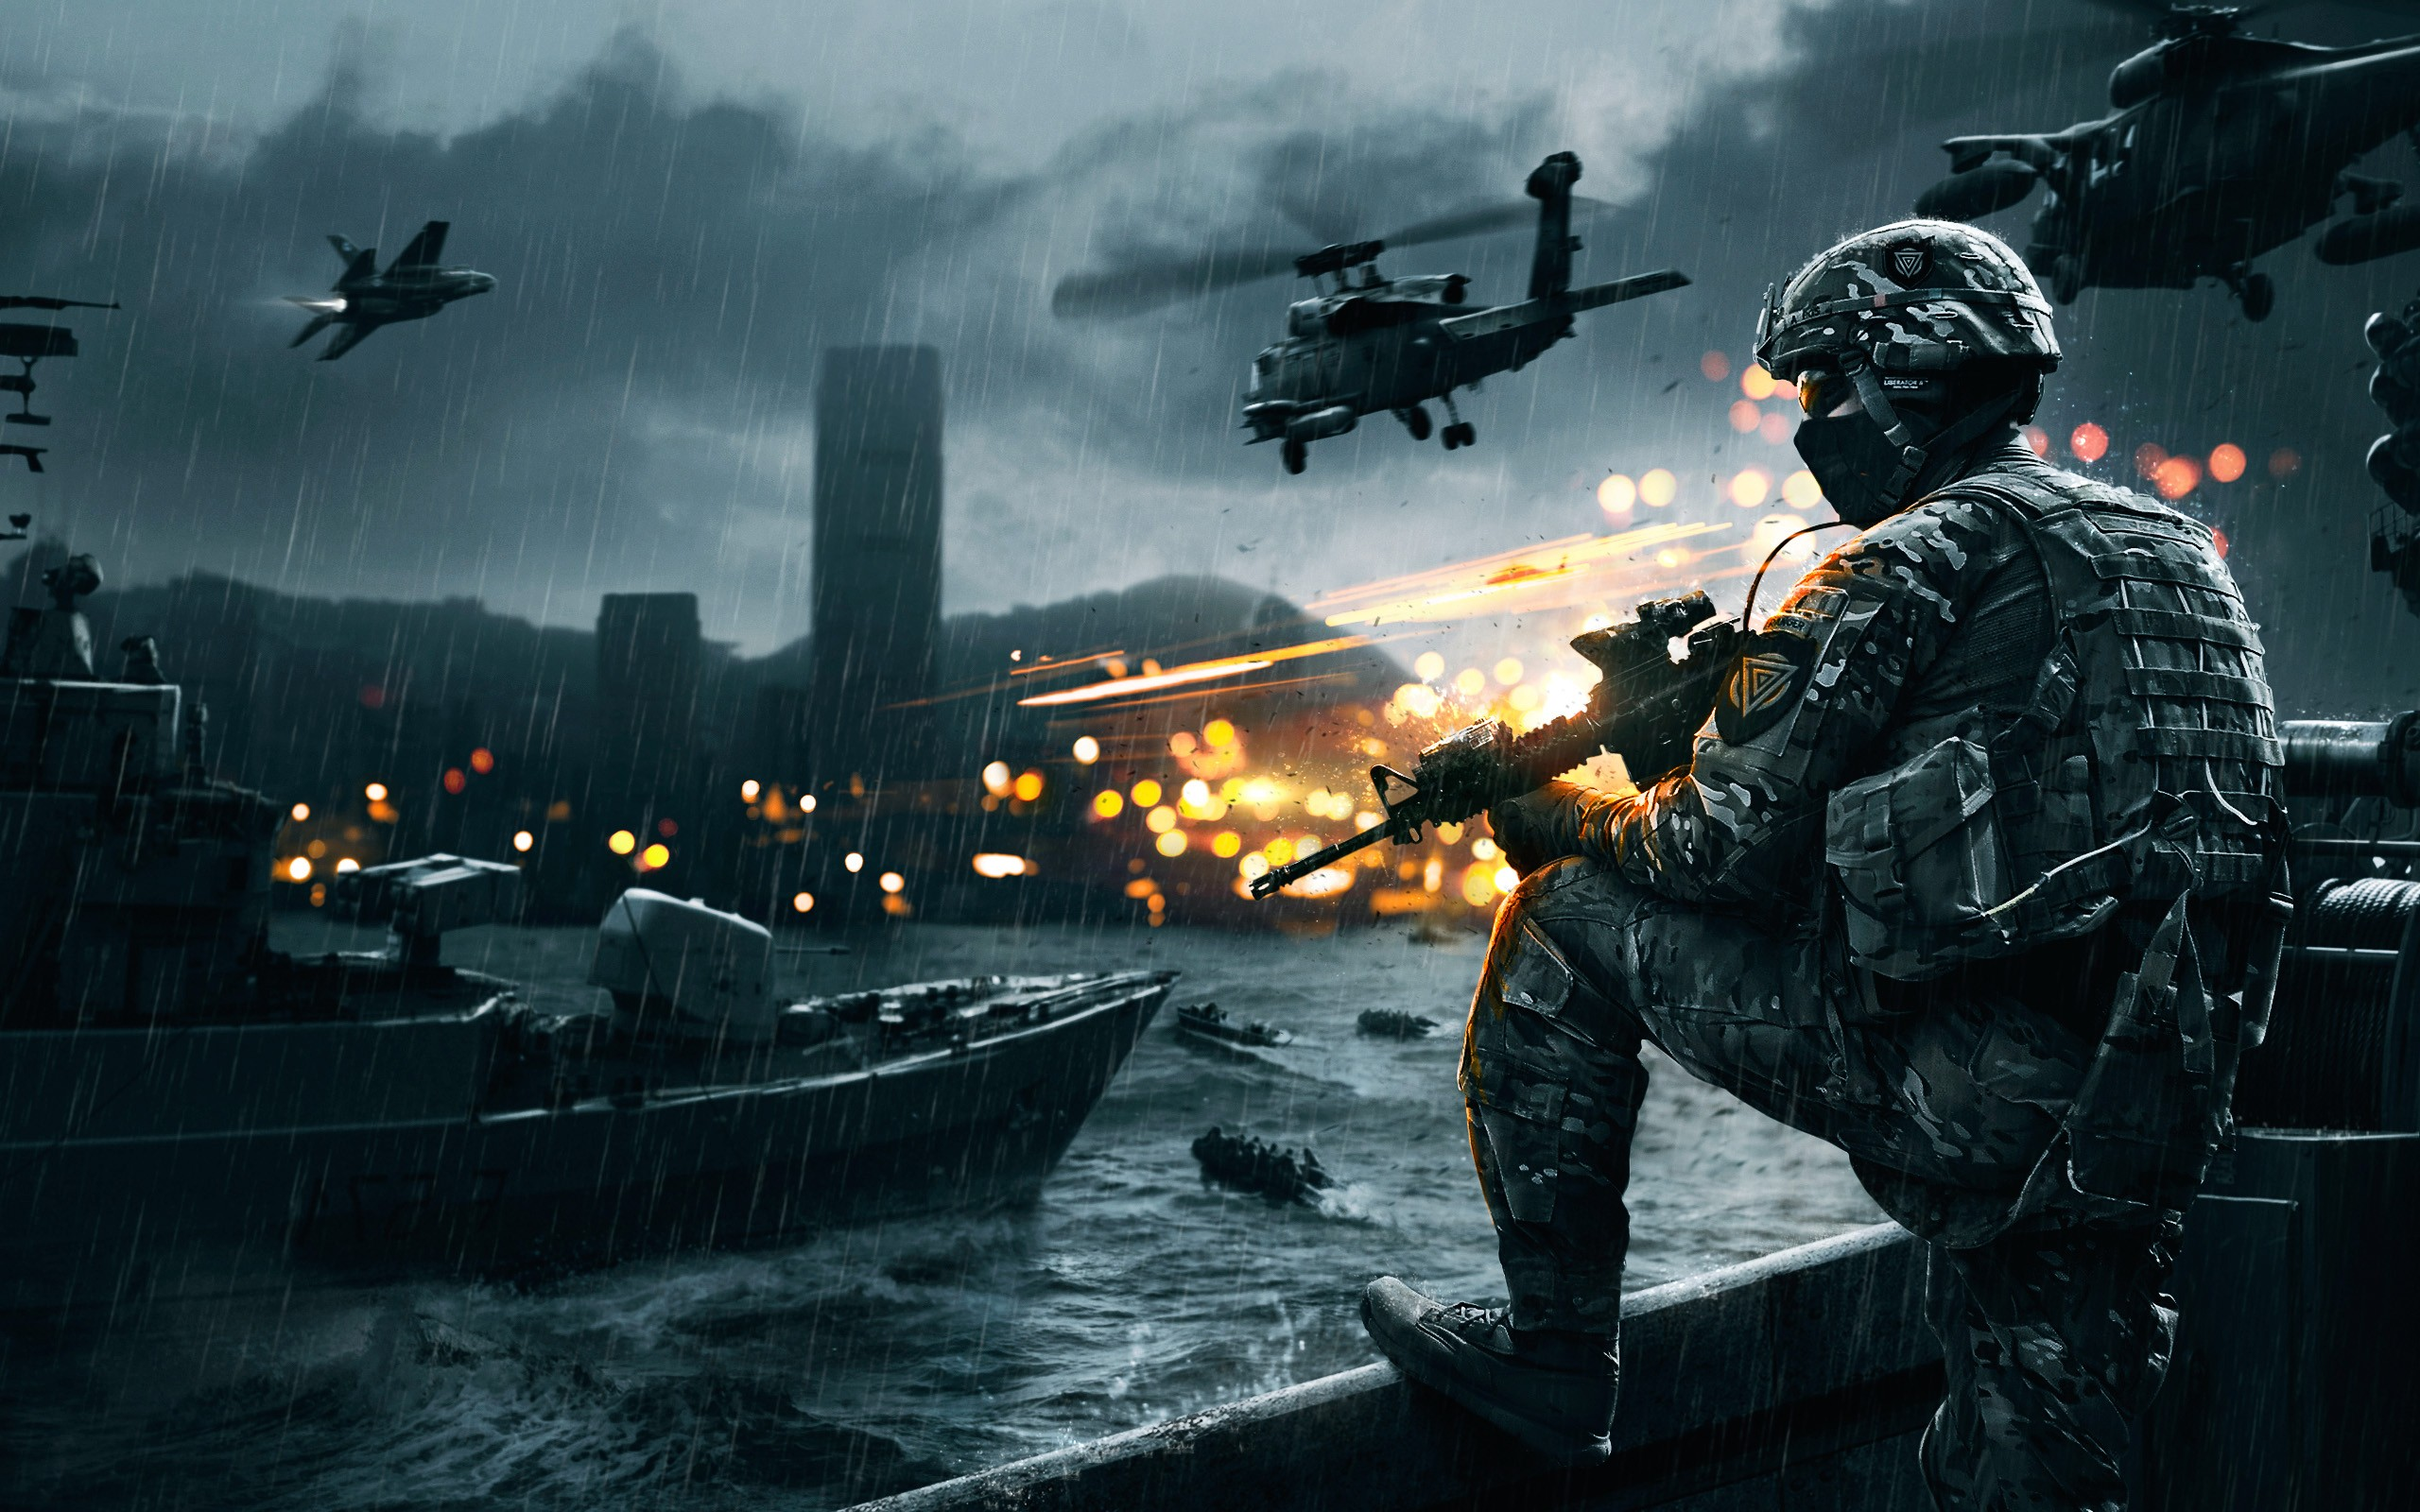 battlefield 4 wallpaper siege of shanghai 247 gaming